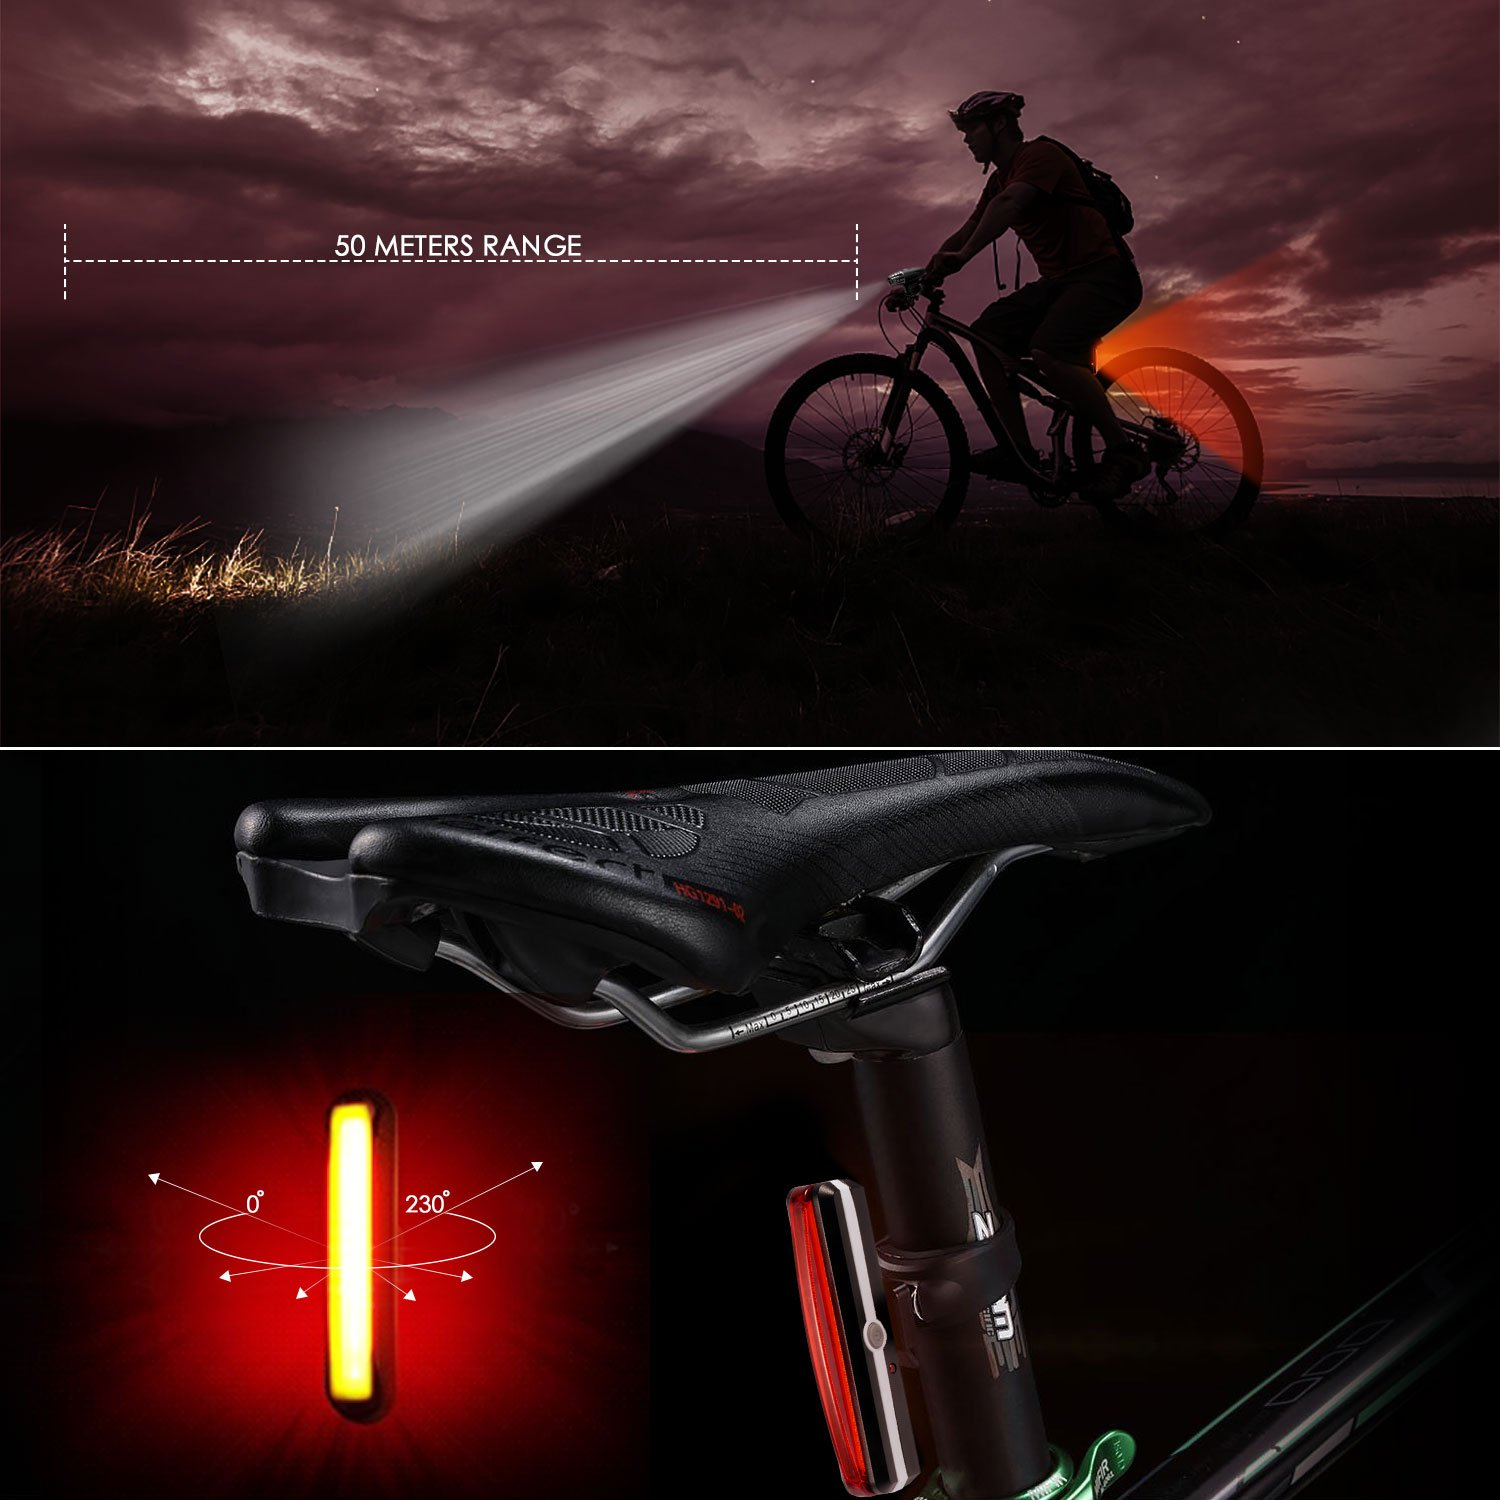 OlymFits USB Rechargeable Bike Light Set LED Tail Light Powerful Lumen Waterproof Bicycle Light Headlight Front and Back Rear Light for Outdoors Cycling Kids